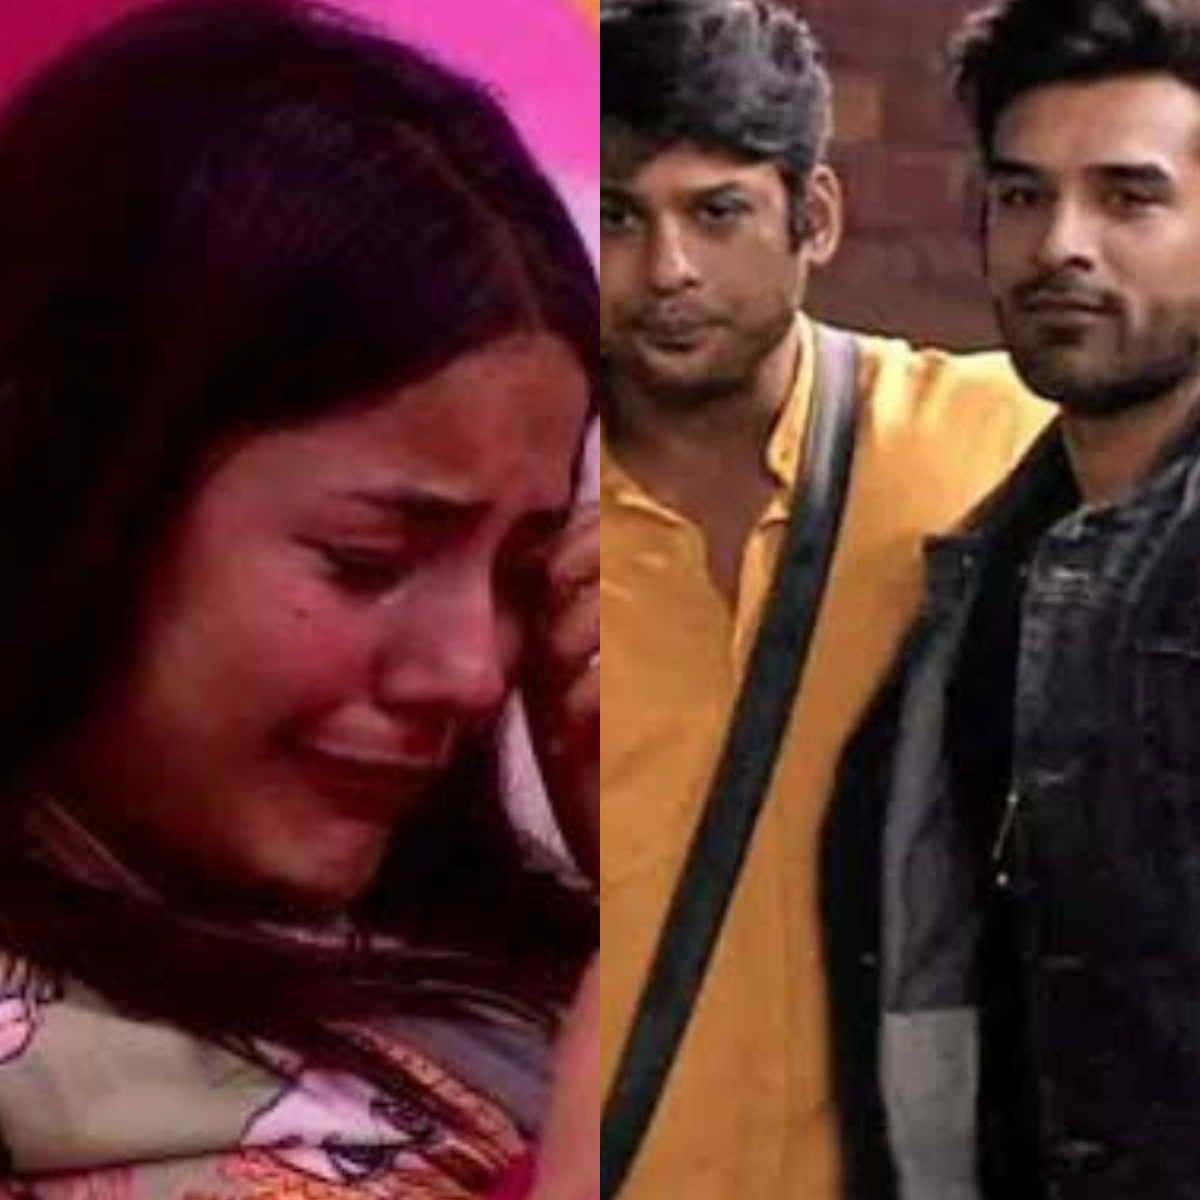 Bigg Boss 13: After Sidharth Shukla & Paras Chhabra's exit, inmates target Shehnaaz Gill; Here's what happened